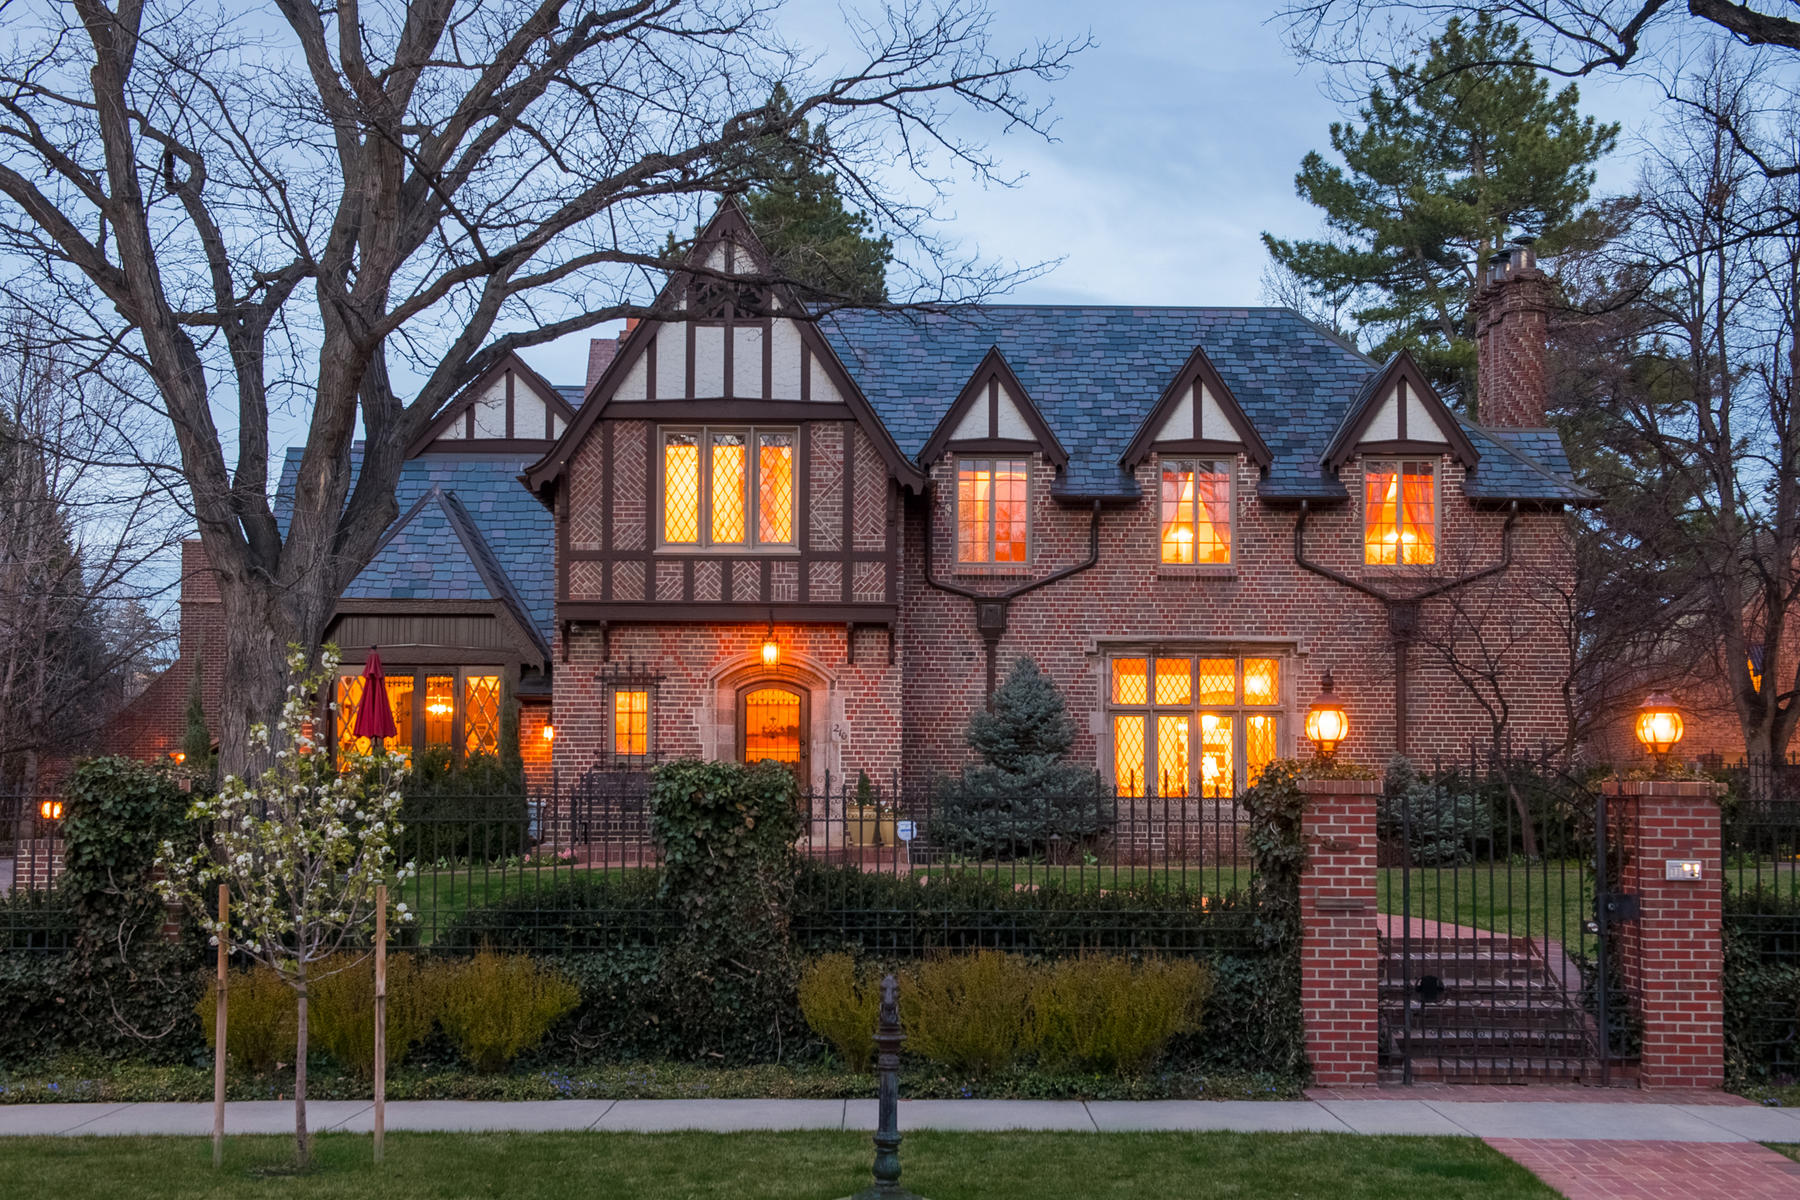 Single Family Home for Active at This Stately Tudor Home Is One Of Country Club's Finest Properties 210 Vine Street Denver, Colorado 80206 United States